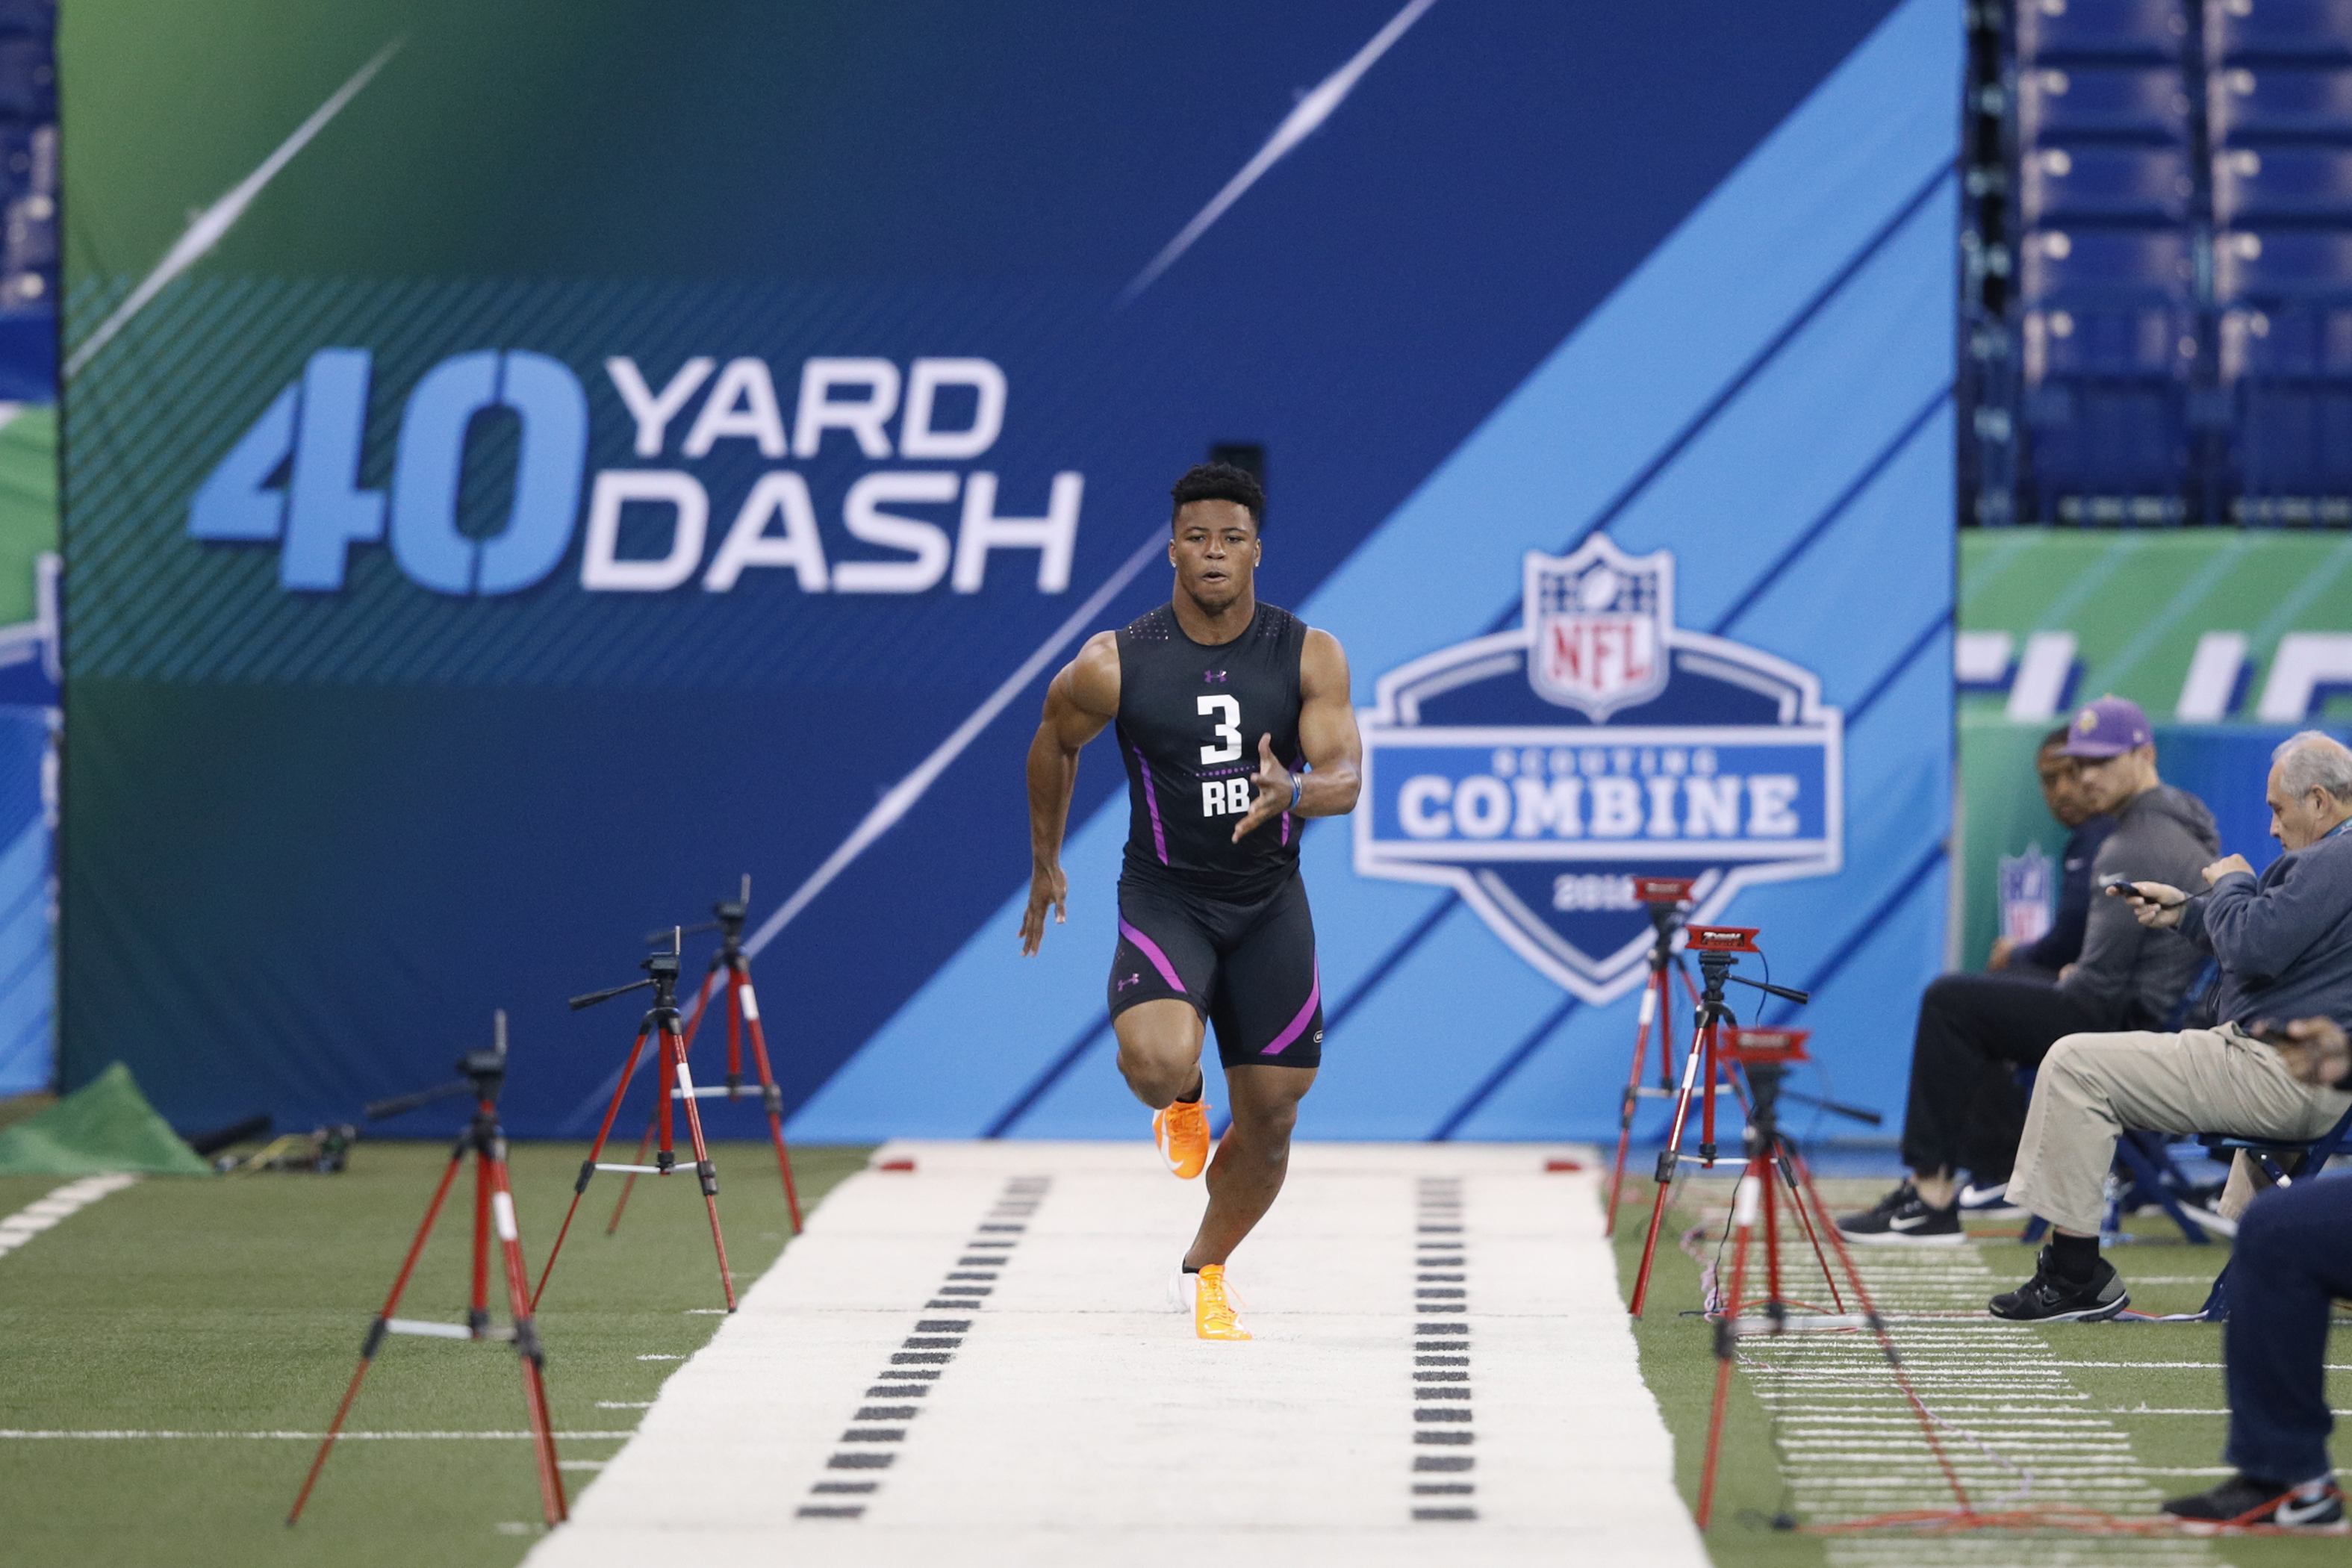 Colts have met with RB Saquon Barkley at NFL Combine